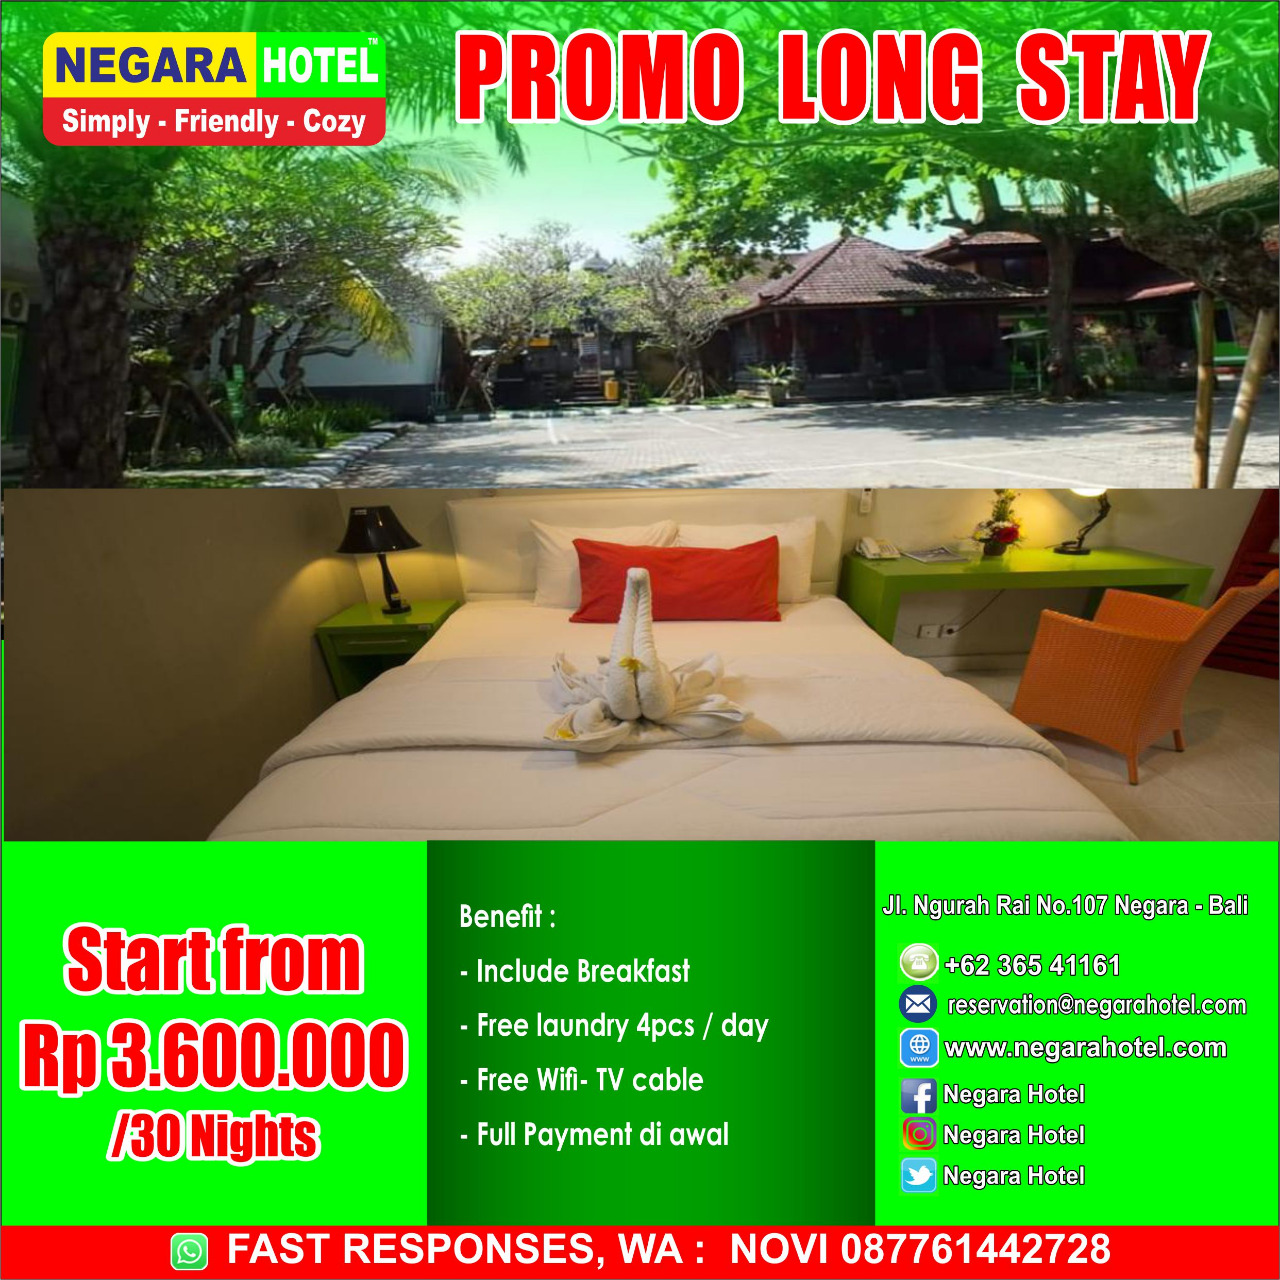 Promo Long Stay